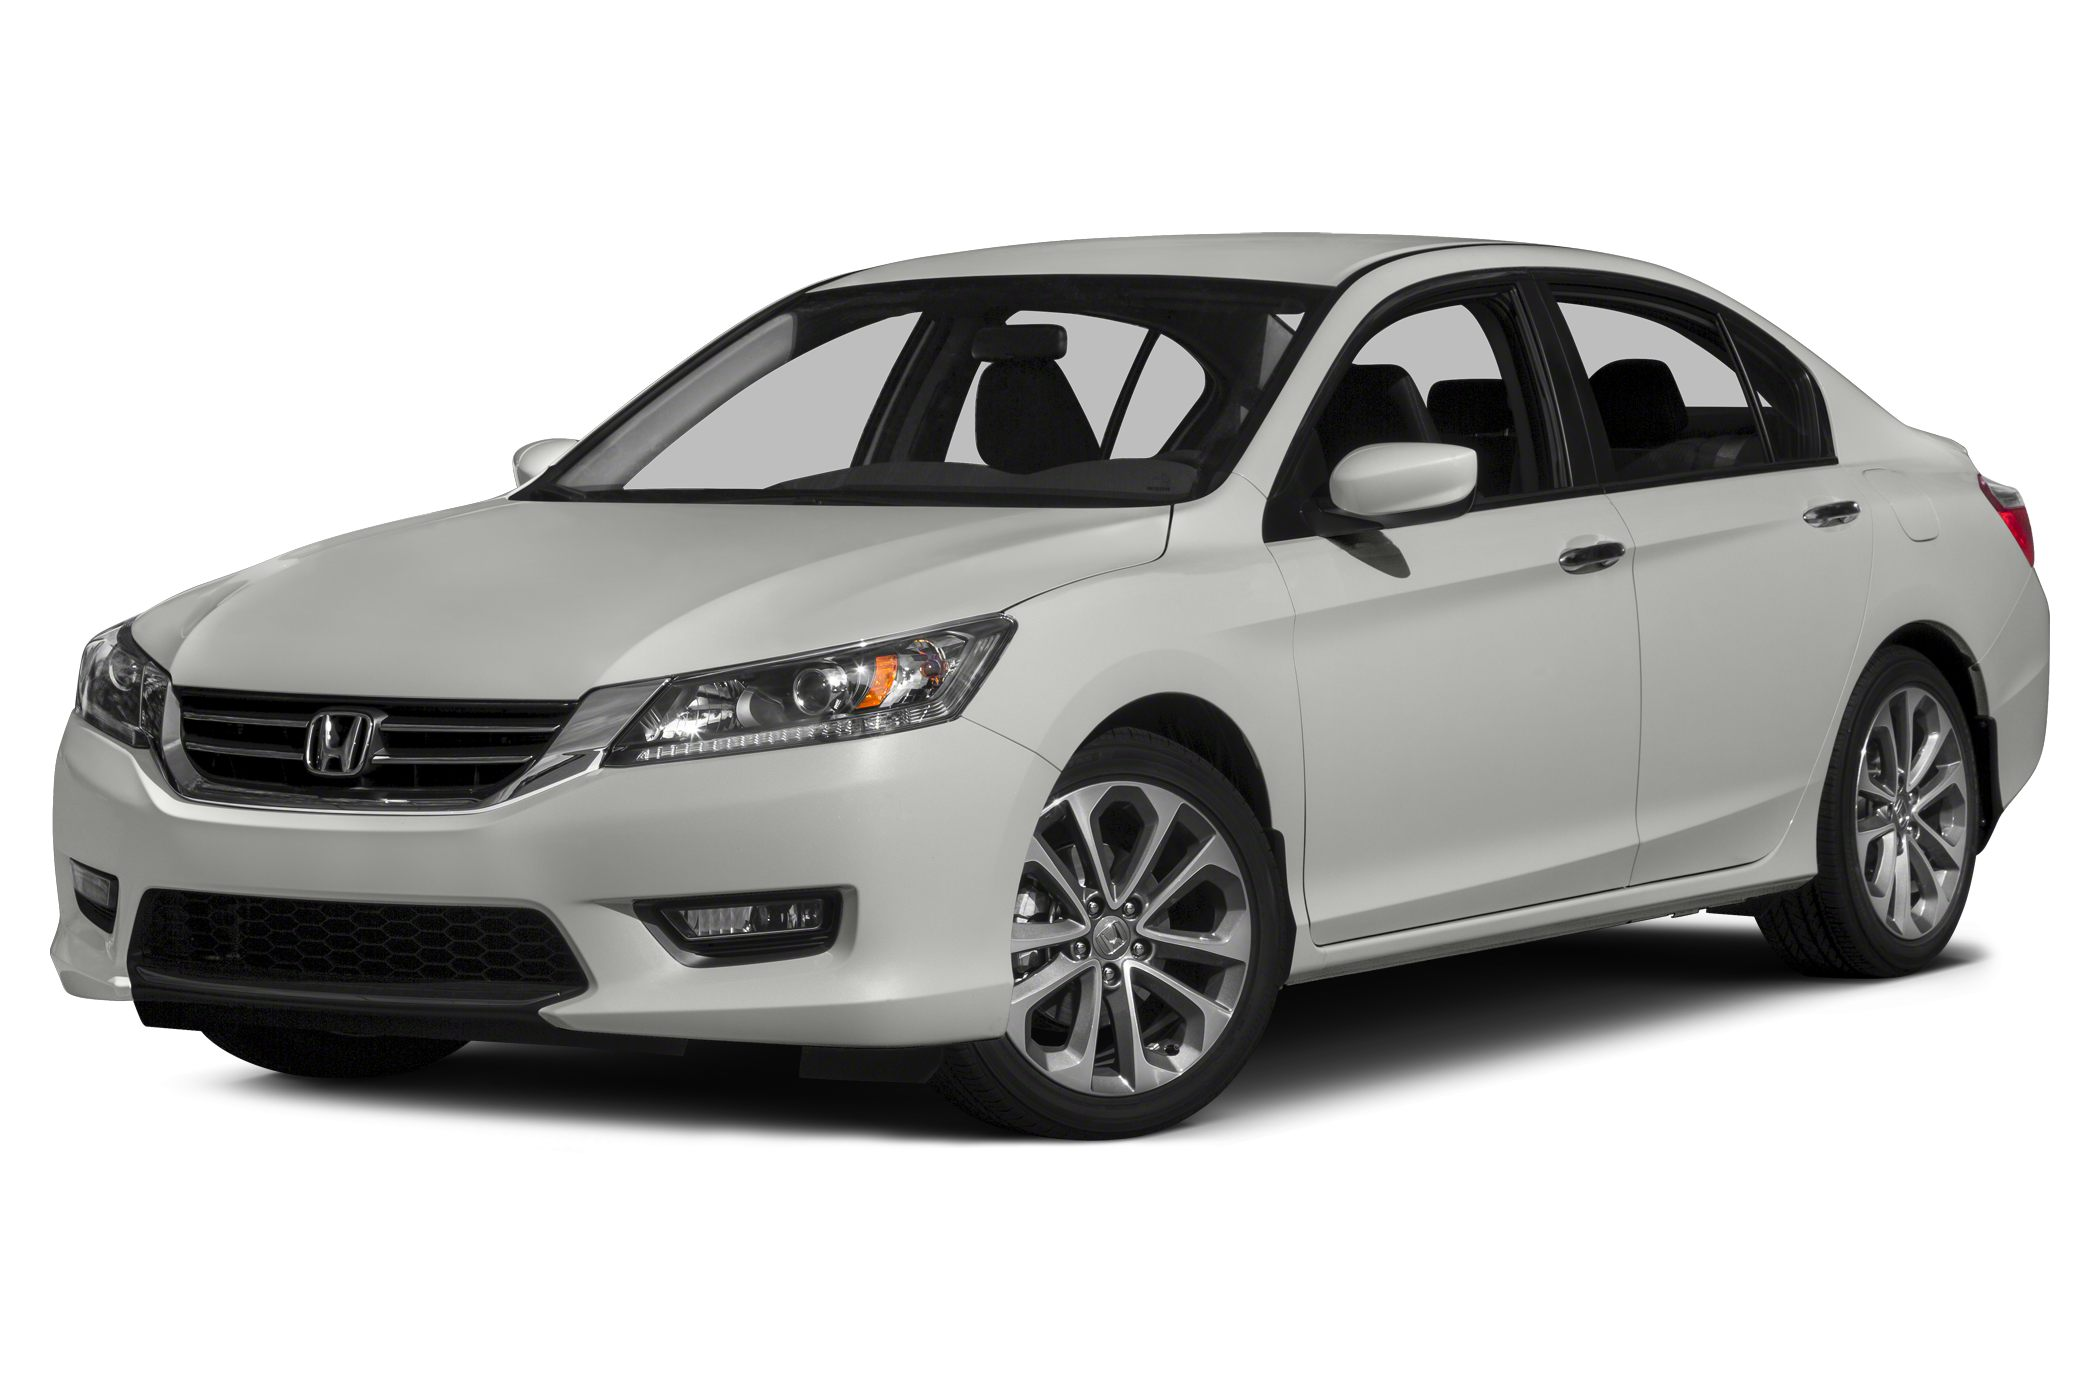 2015 Honda Accord Sport Sedan for sale in Greenville for $22,995 with 2,793 miles